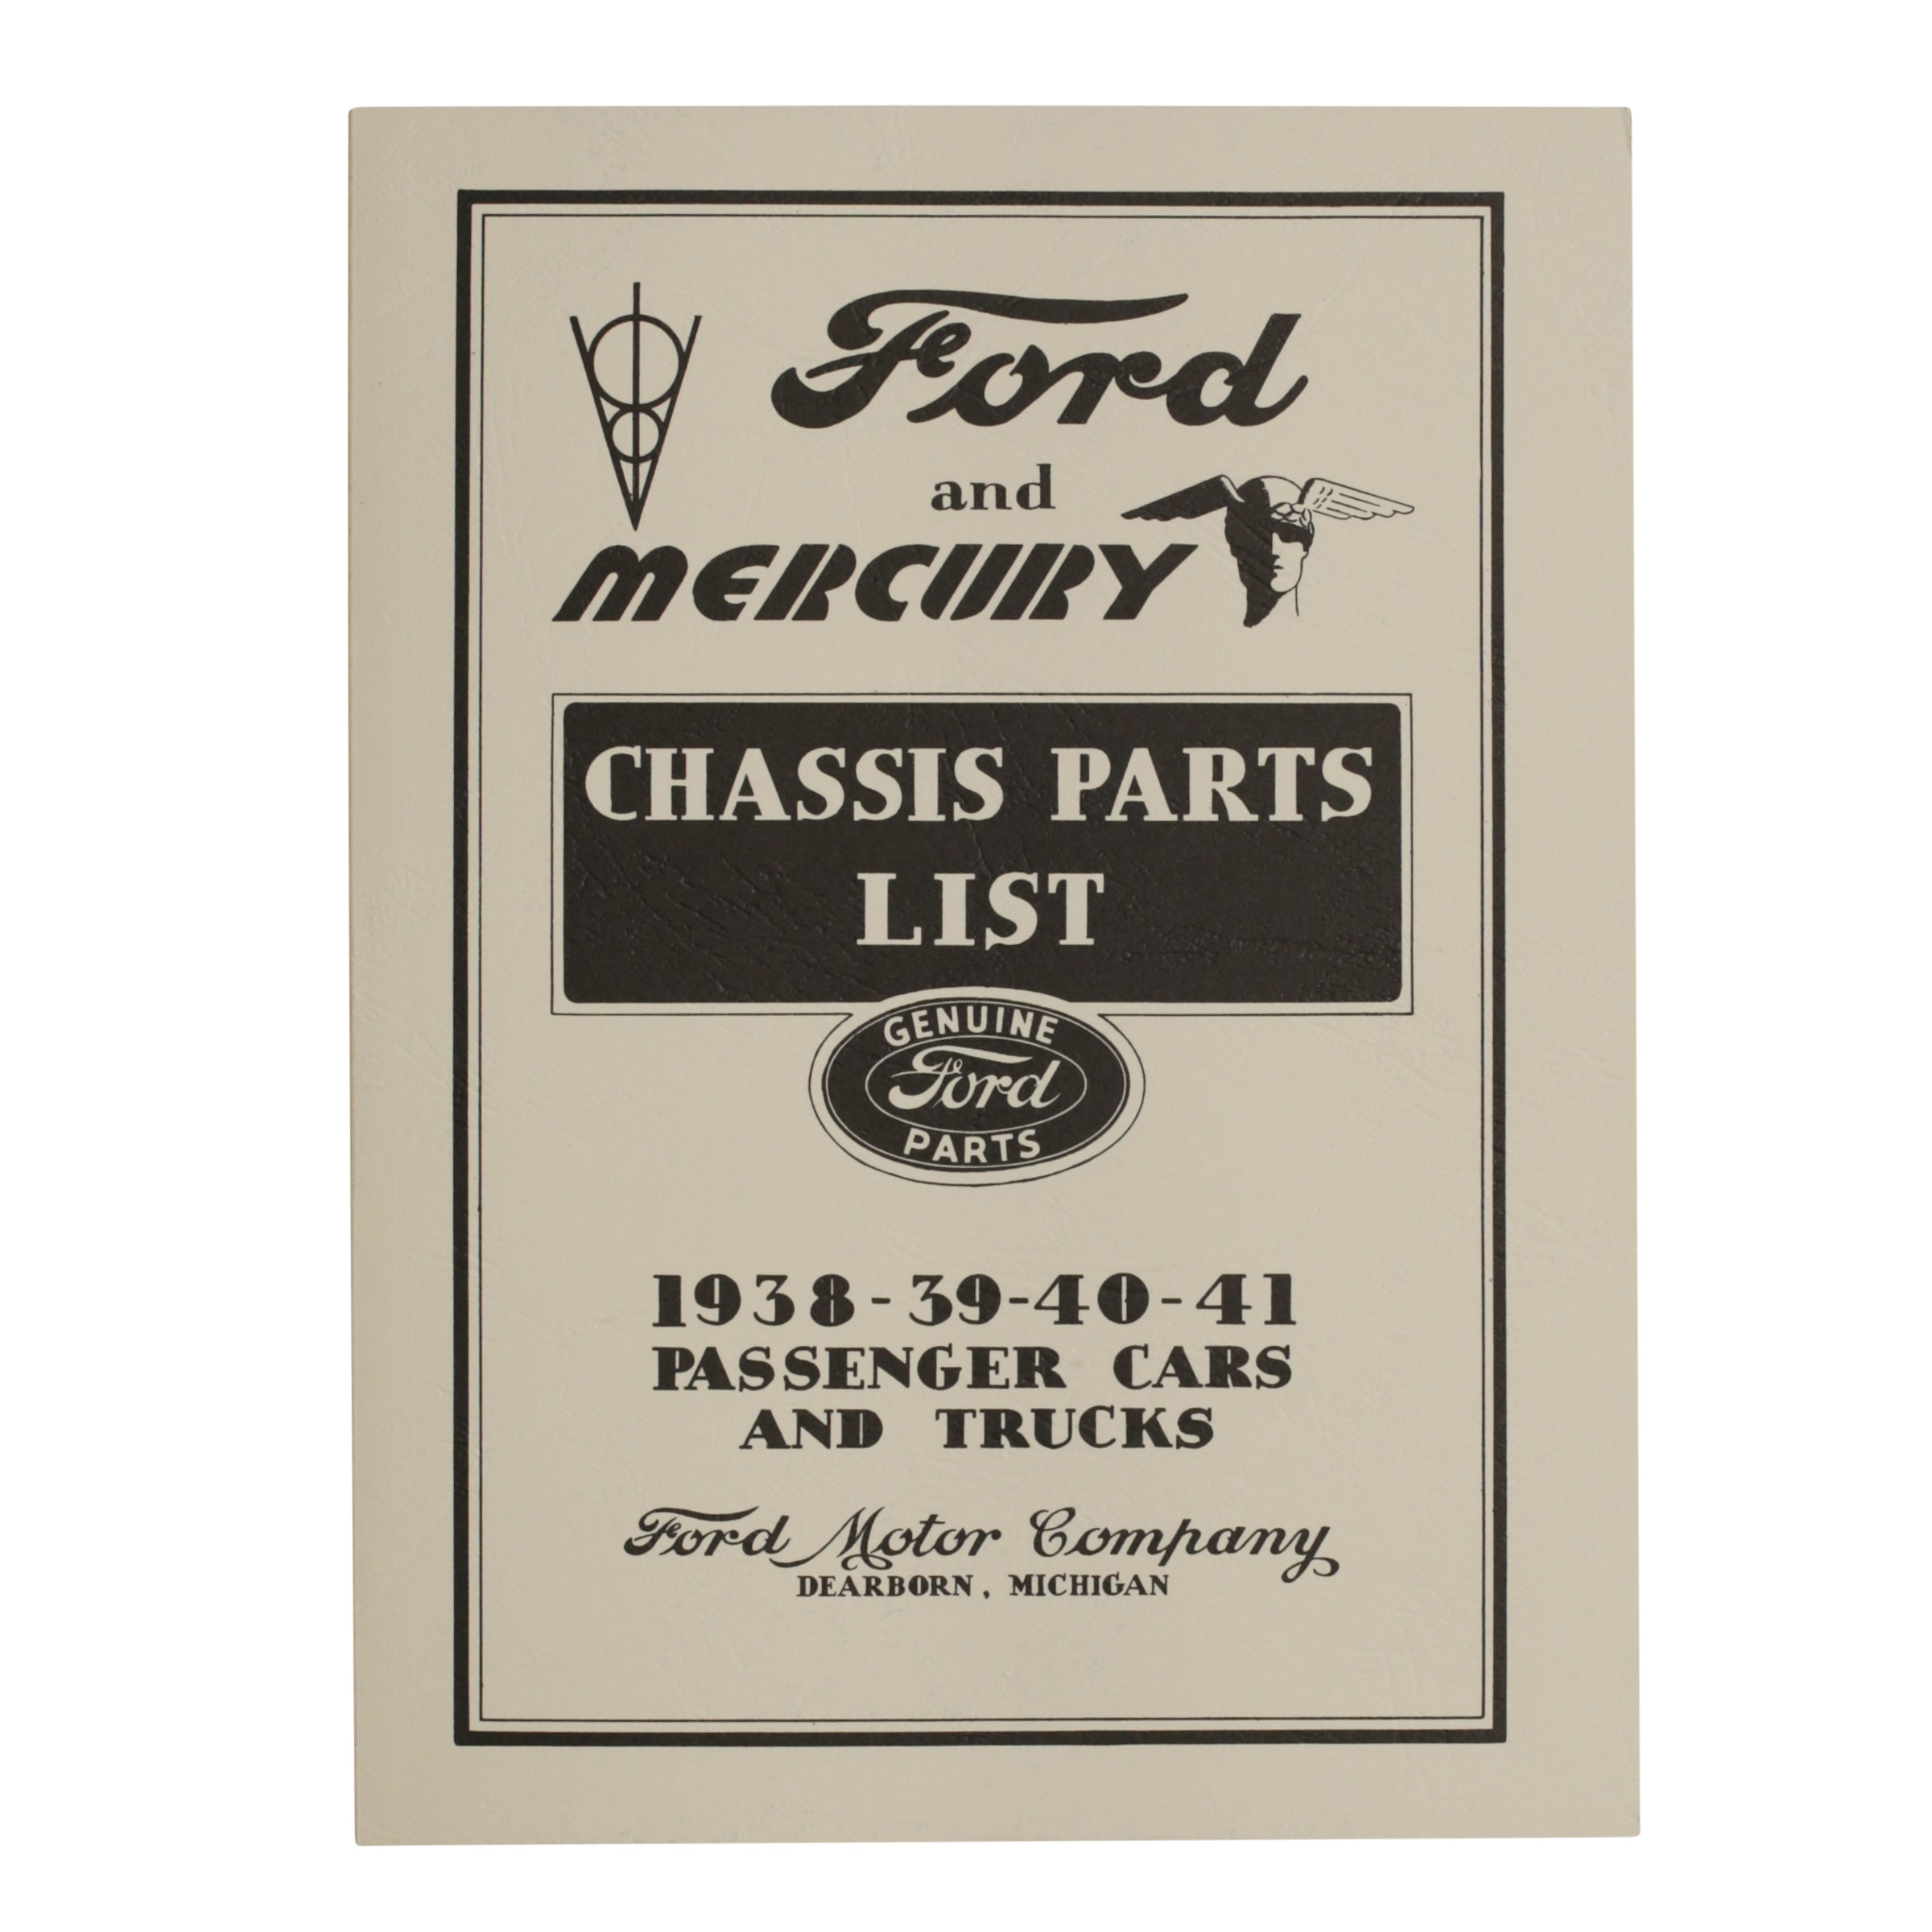 Ford Chassis Parts List • 1938-41 Ford